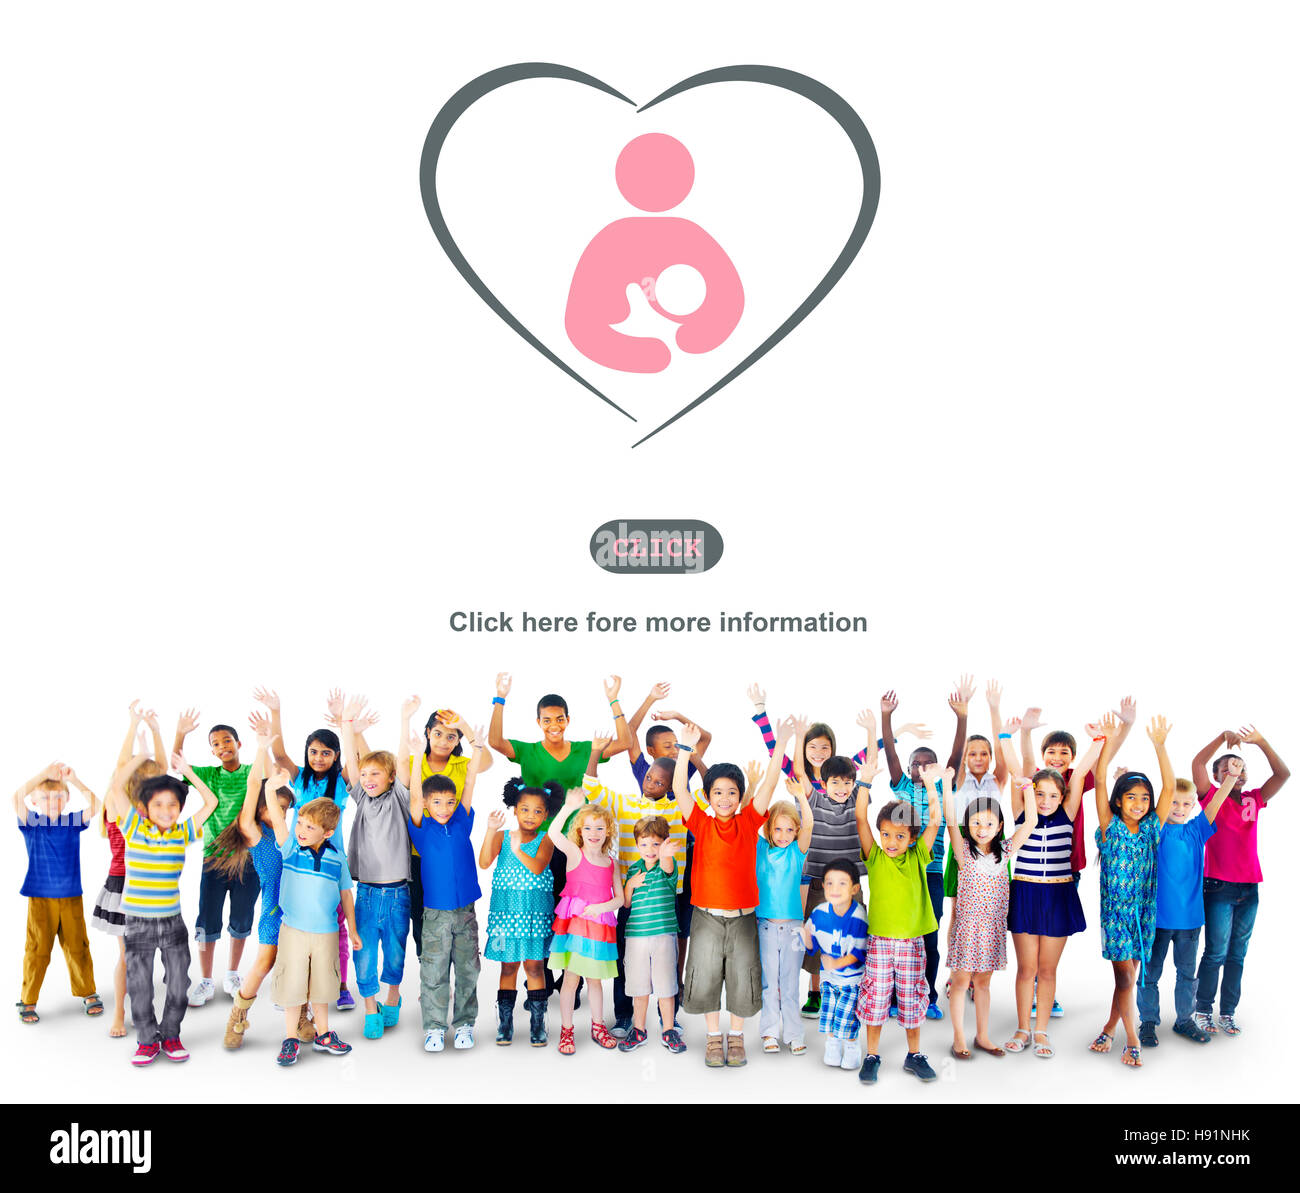 Mother Mommy Mum Parent Woman Perenting Concept - Stock Image